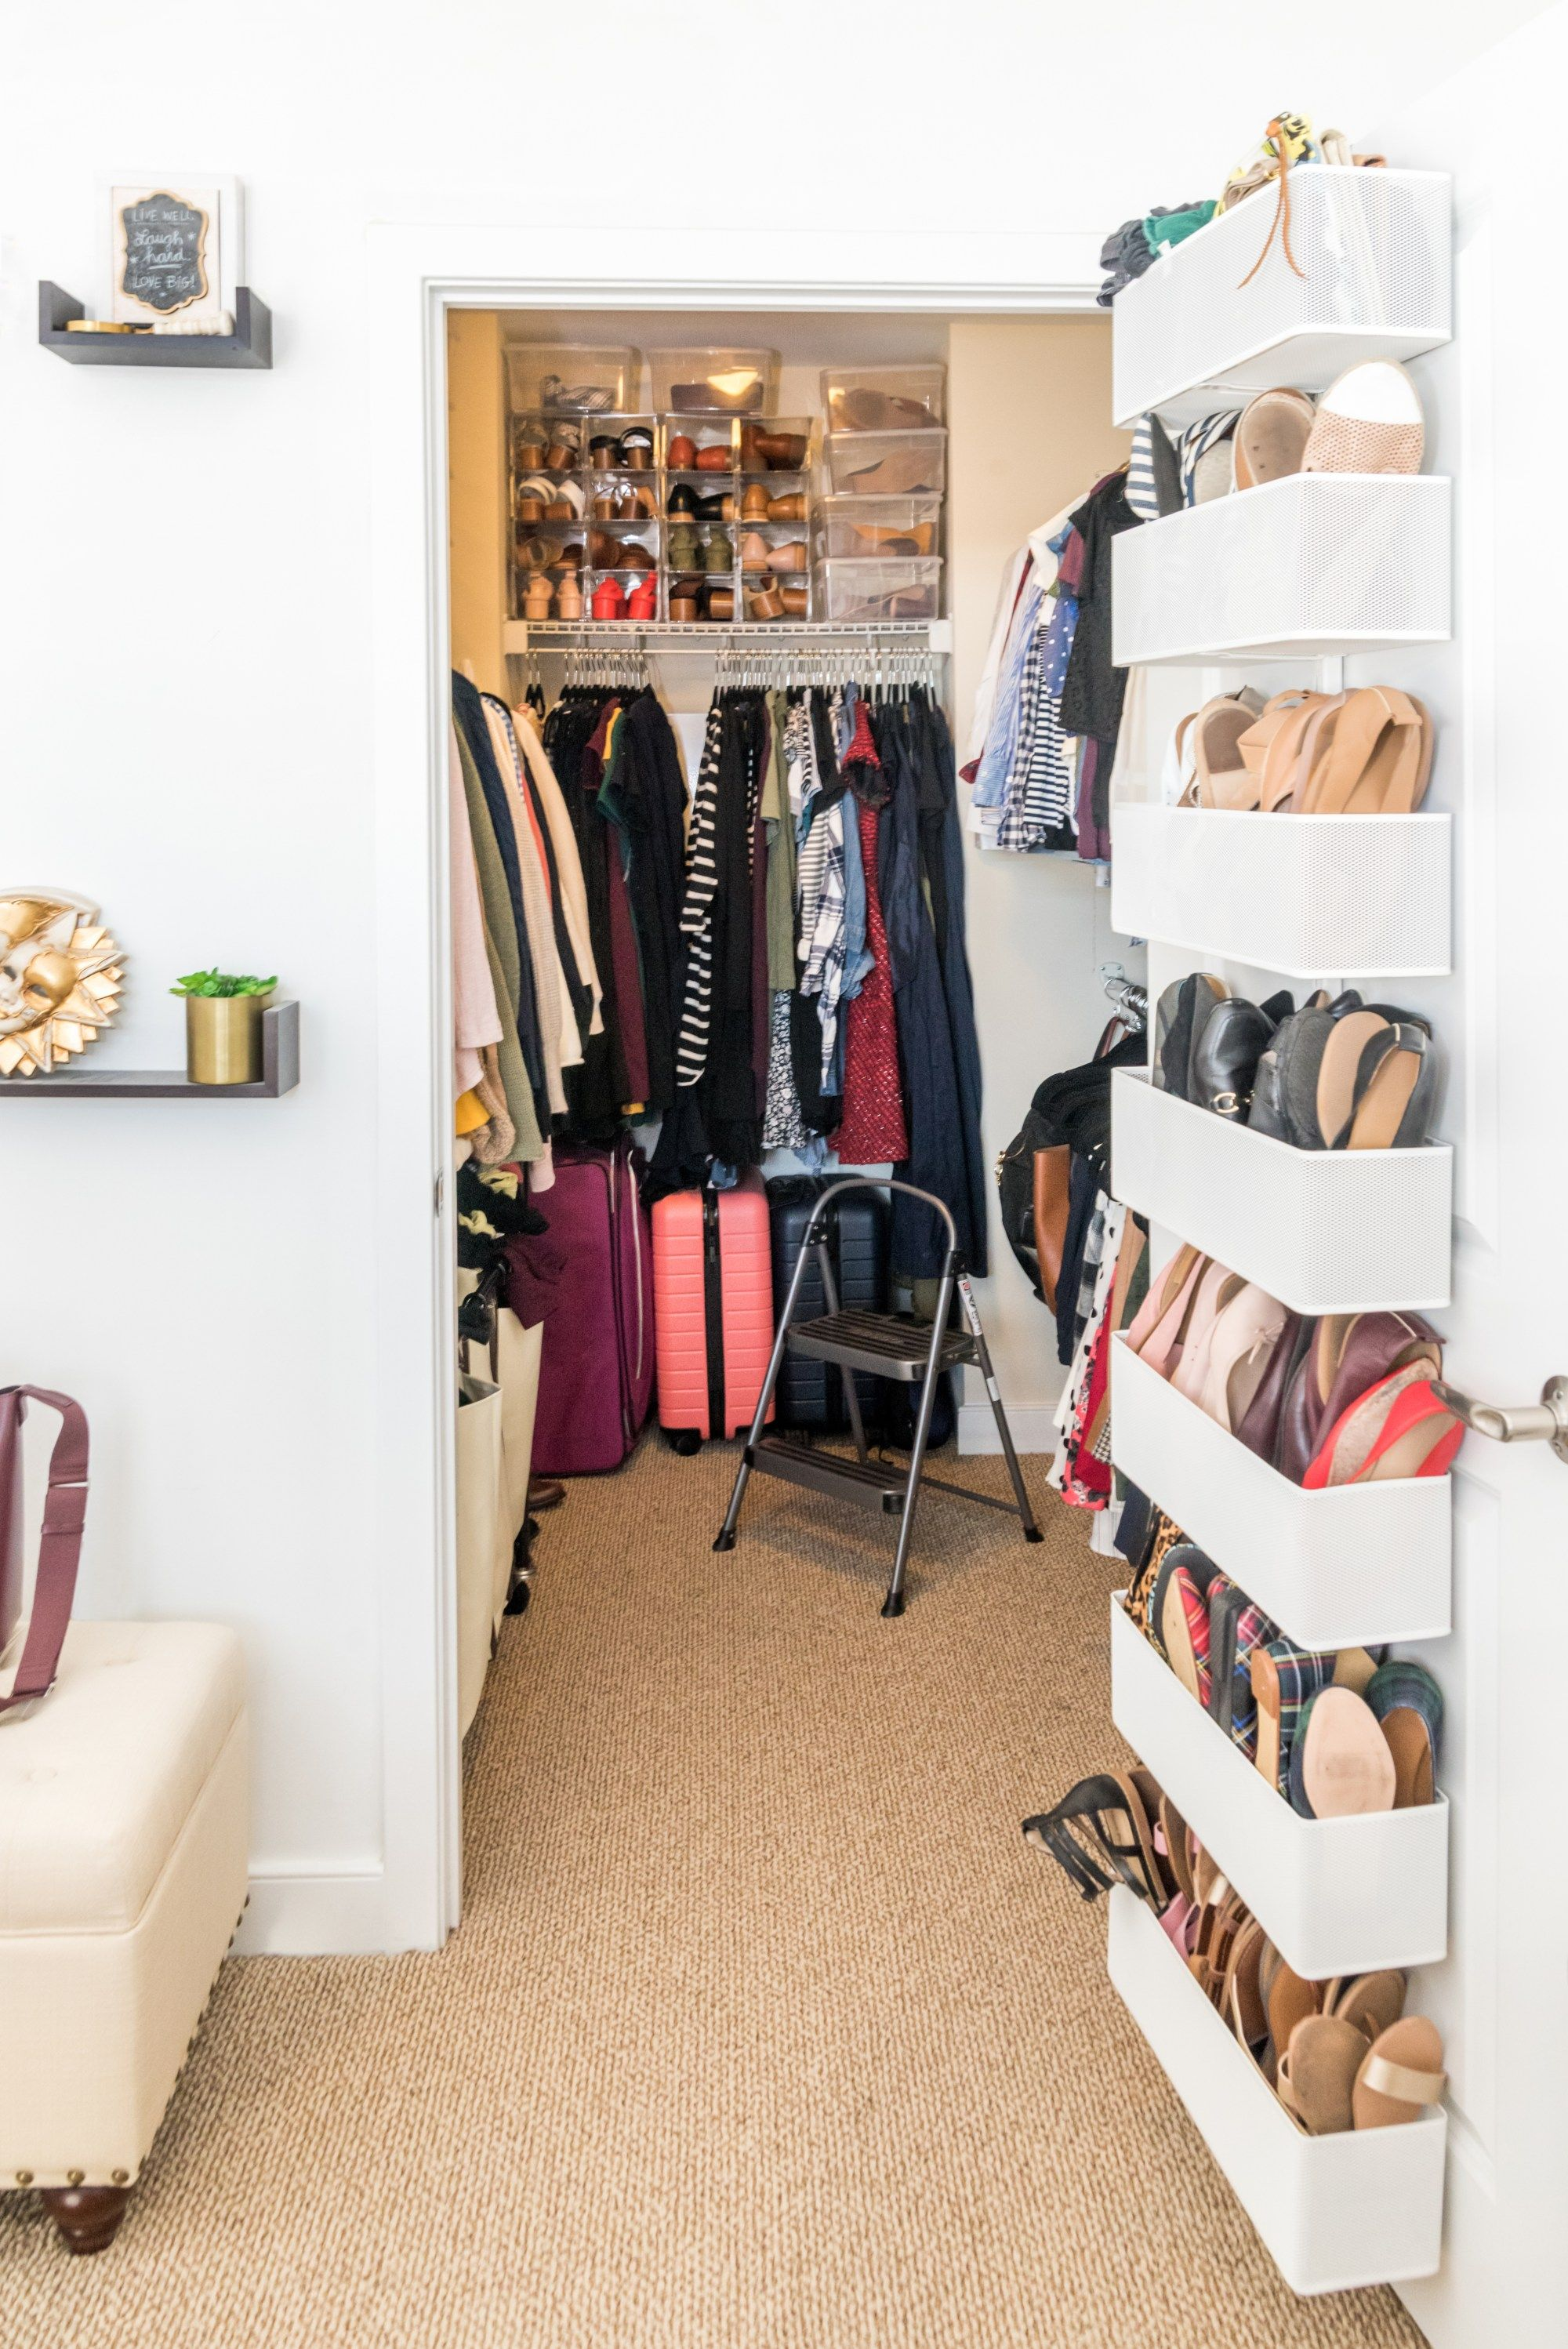 How I Re-Organized My Closet with The Home Edit | Something Good | A DC Style and Lifestyle Blog on a Budget -   19 the home edit organization closet ideas